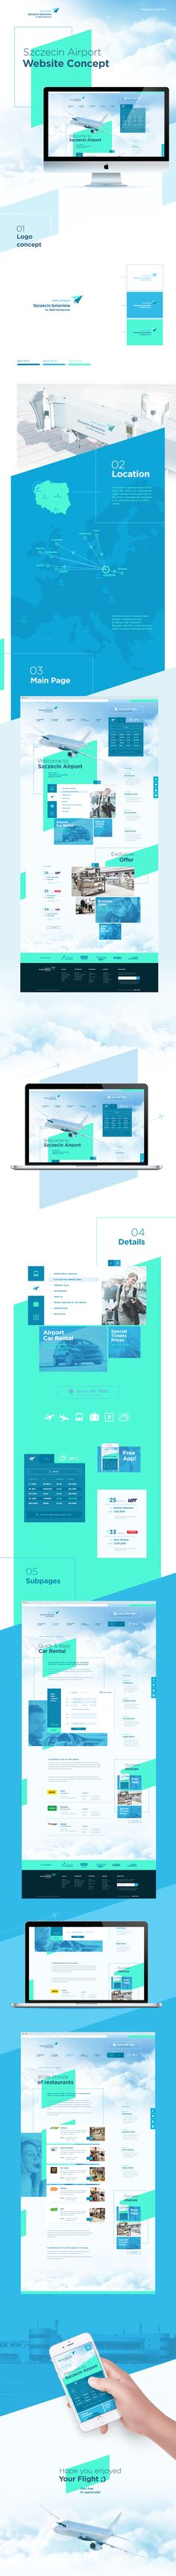 Szczecin Airport | redesign concept on Behance